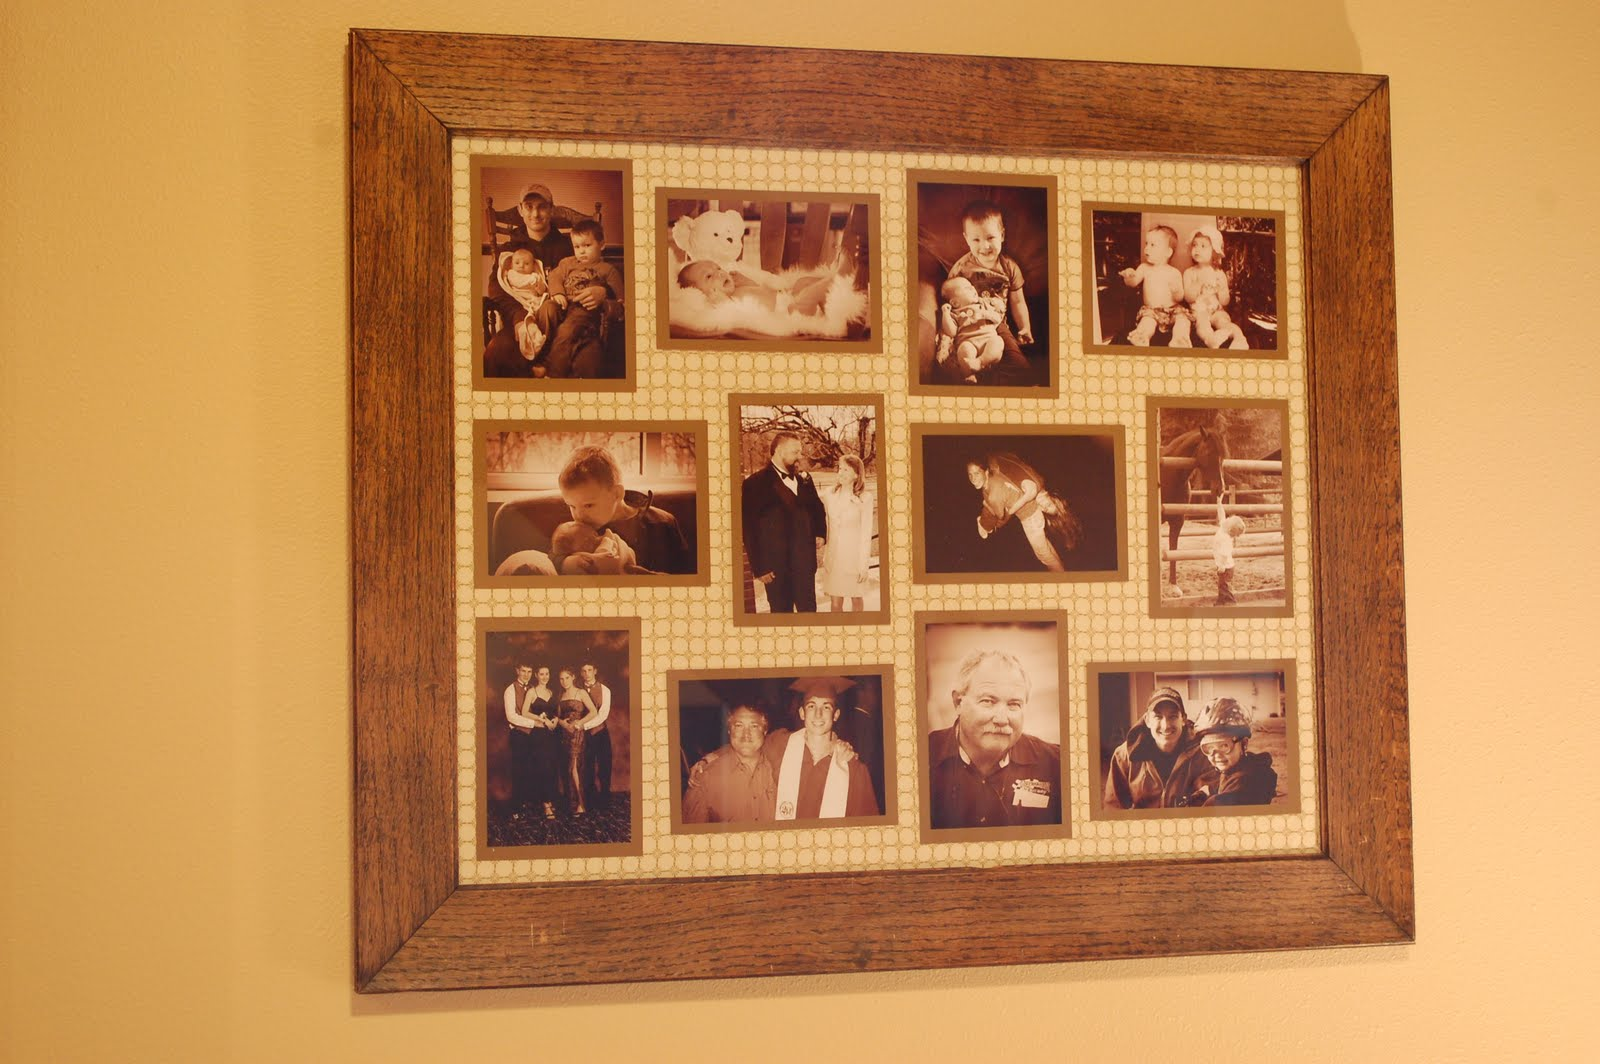 Cheap Custom Frames Online Will Work For Decor Custom Wall Collage Frames Two Ways